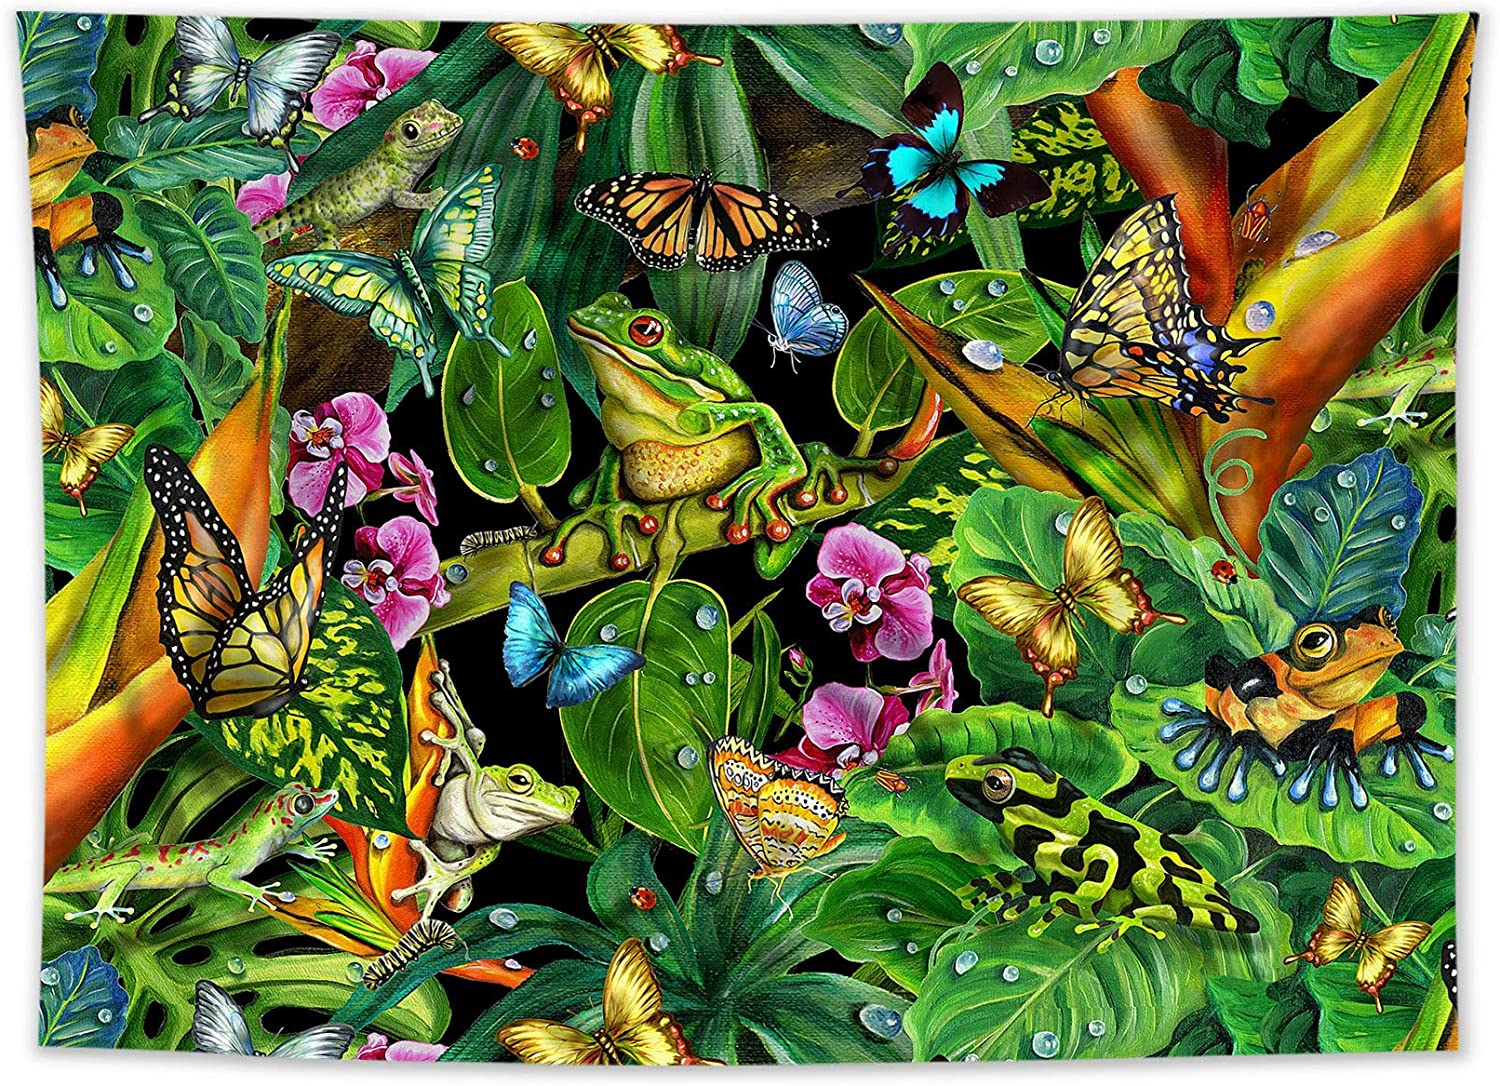 HVEST Frog Tapestry Insect Butterfly and Green Plant in The Tropical Rainforest Tapestry Natural Scenery Art Tapestries Wall Hanging for Bedroom Living Room Dorm Home Indie Decor,60x40 Inchs